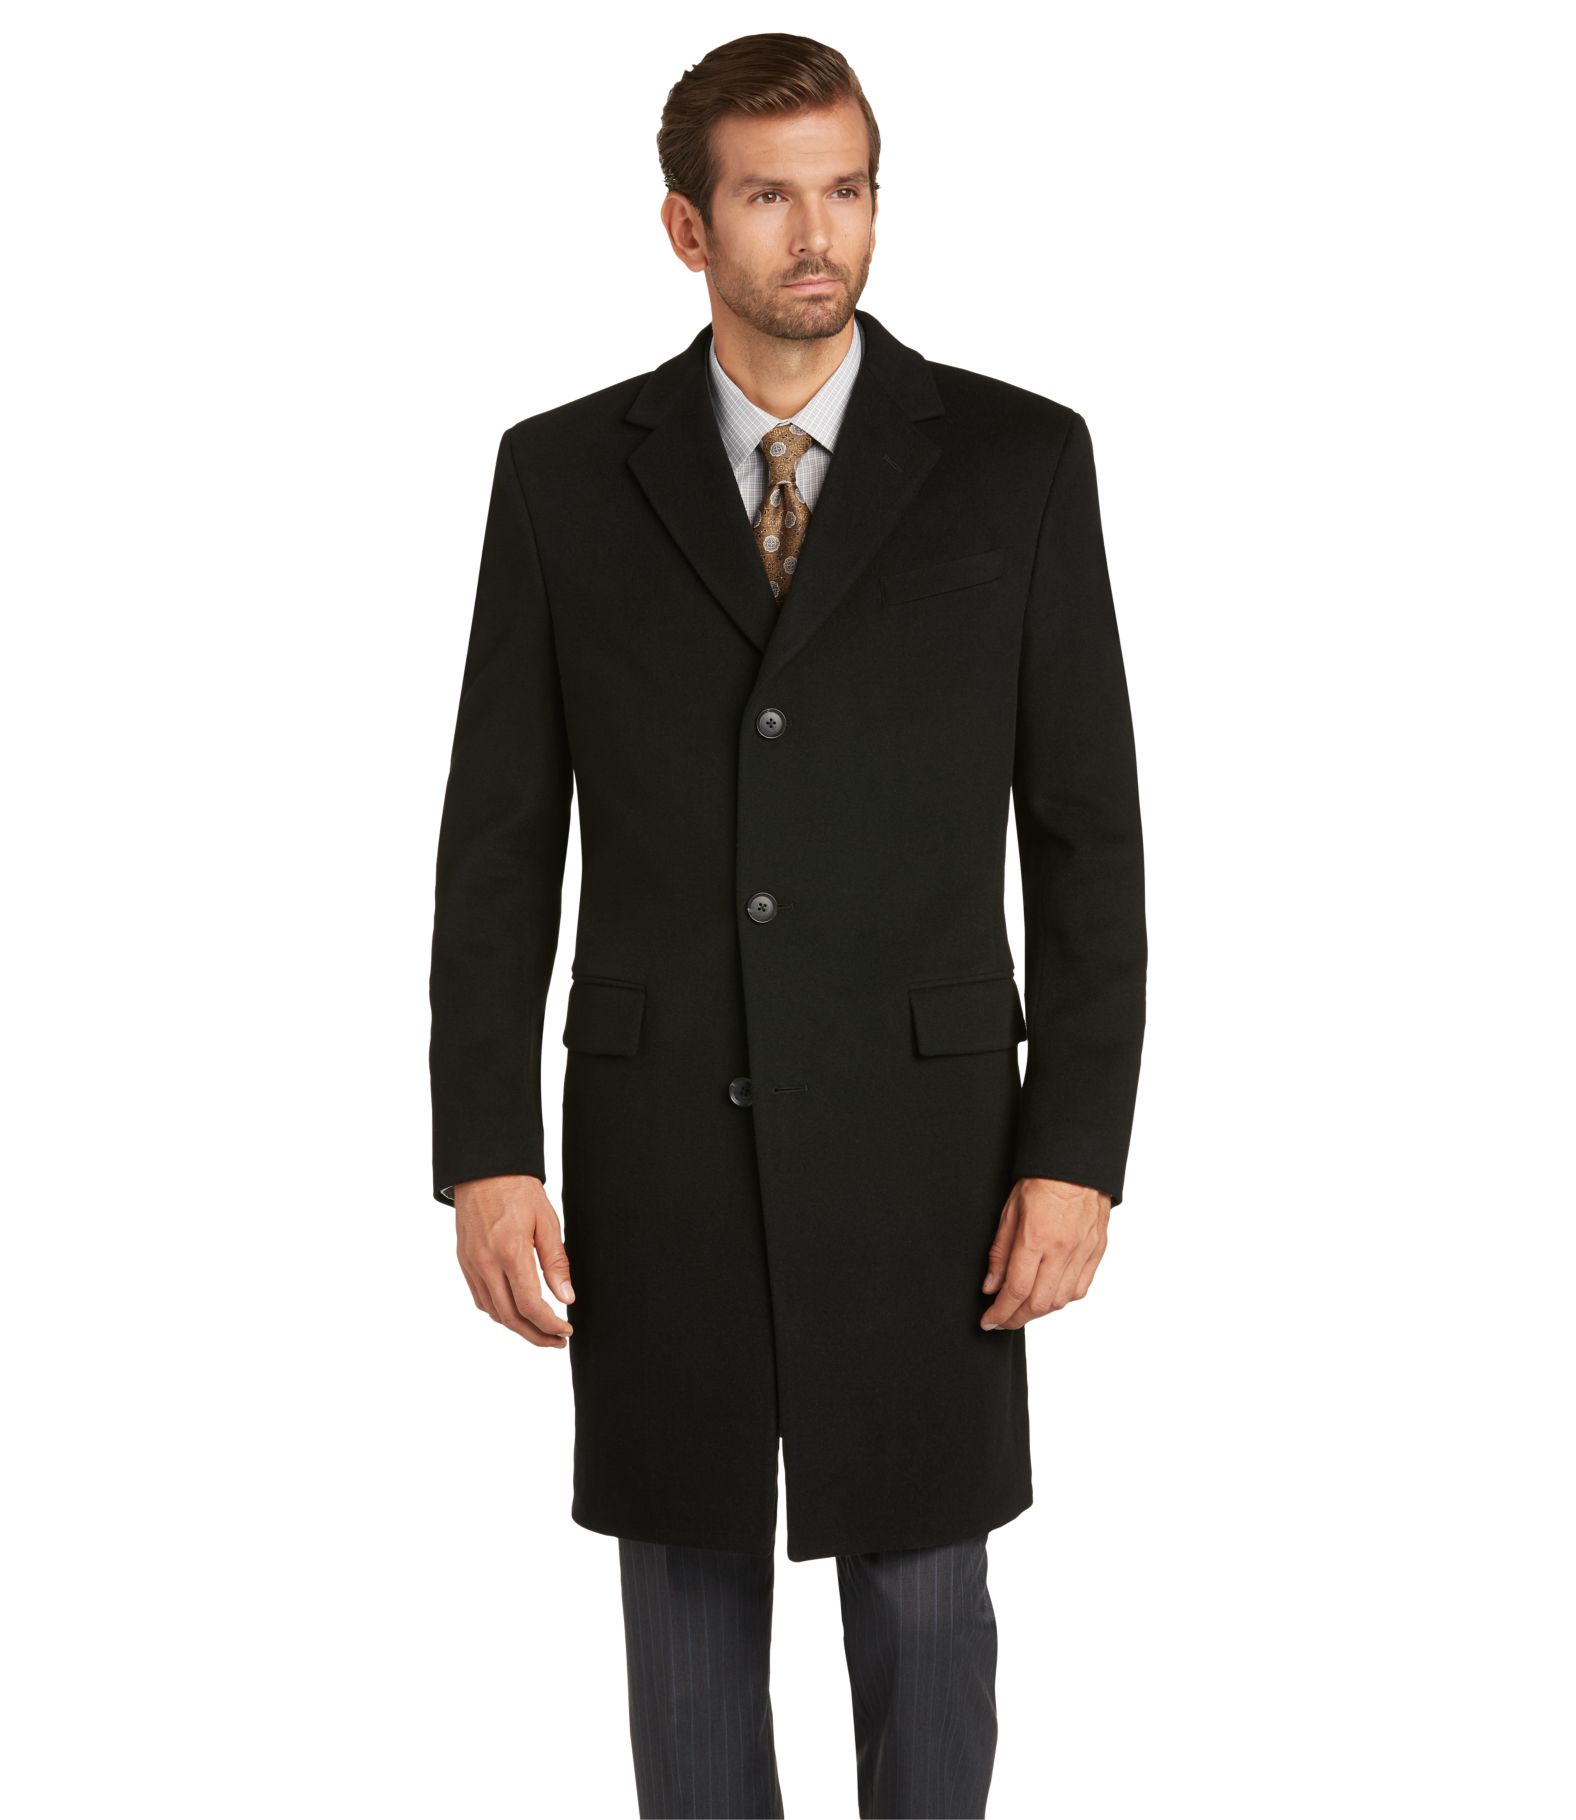 Reserve Collection Slim Fit Topcoat - All Outerwear | Jos A Bank